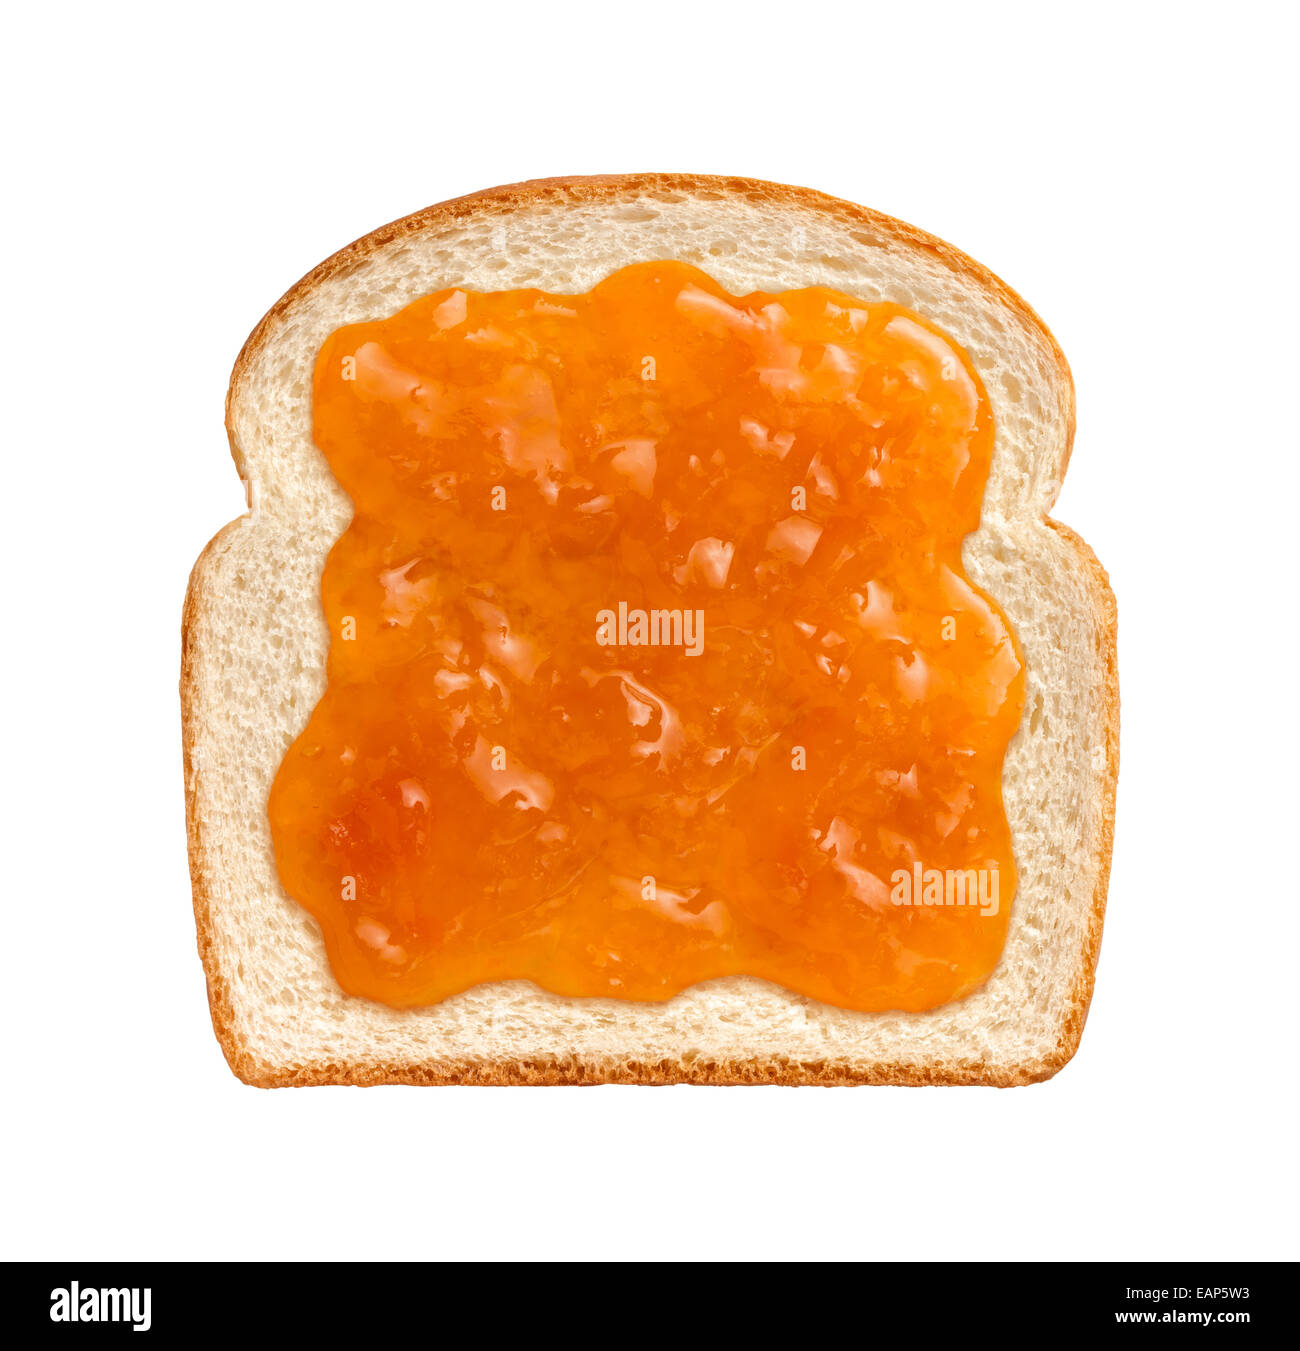 Apricot Preserves on a Single Slice of white bread isolated on a white background. - Stock Image